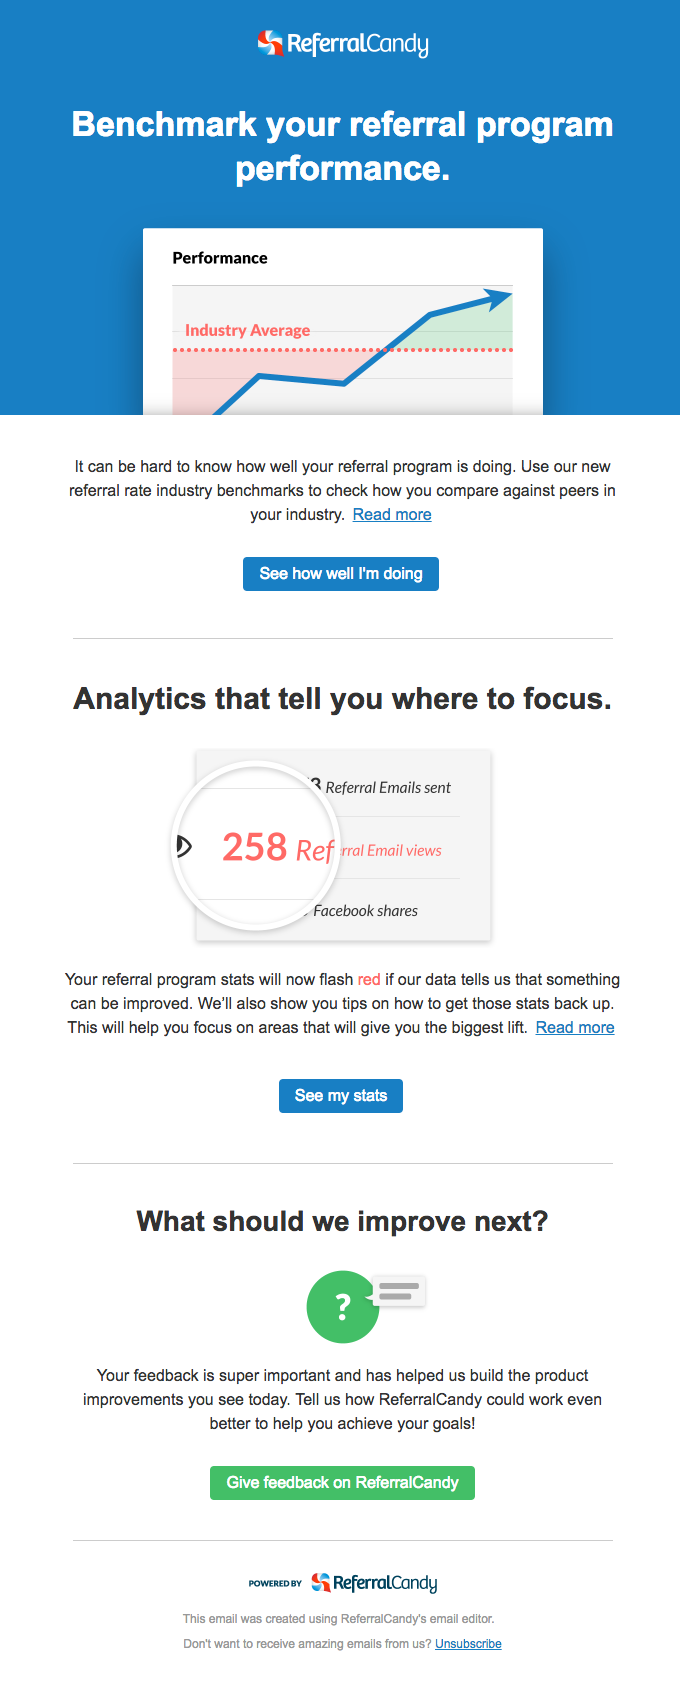 New: Benchmark your referral program with improved analytics